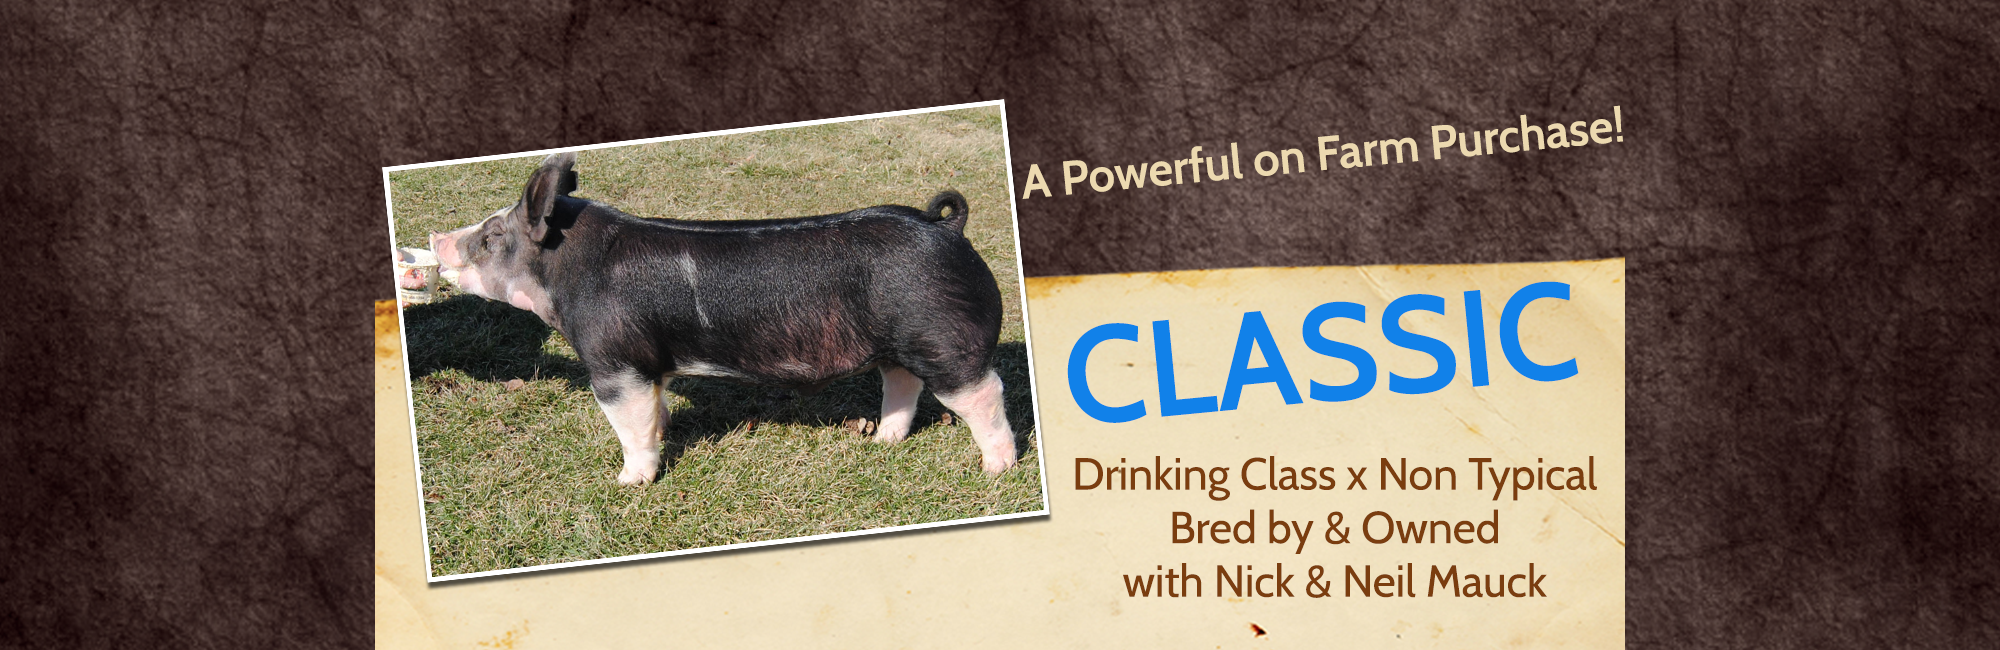 featured boar Classic